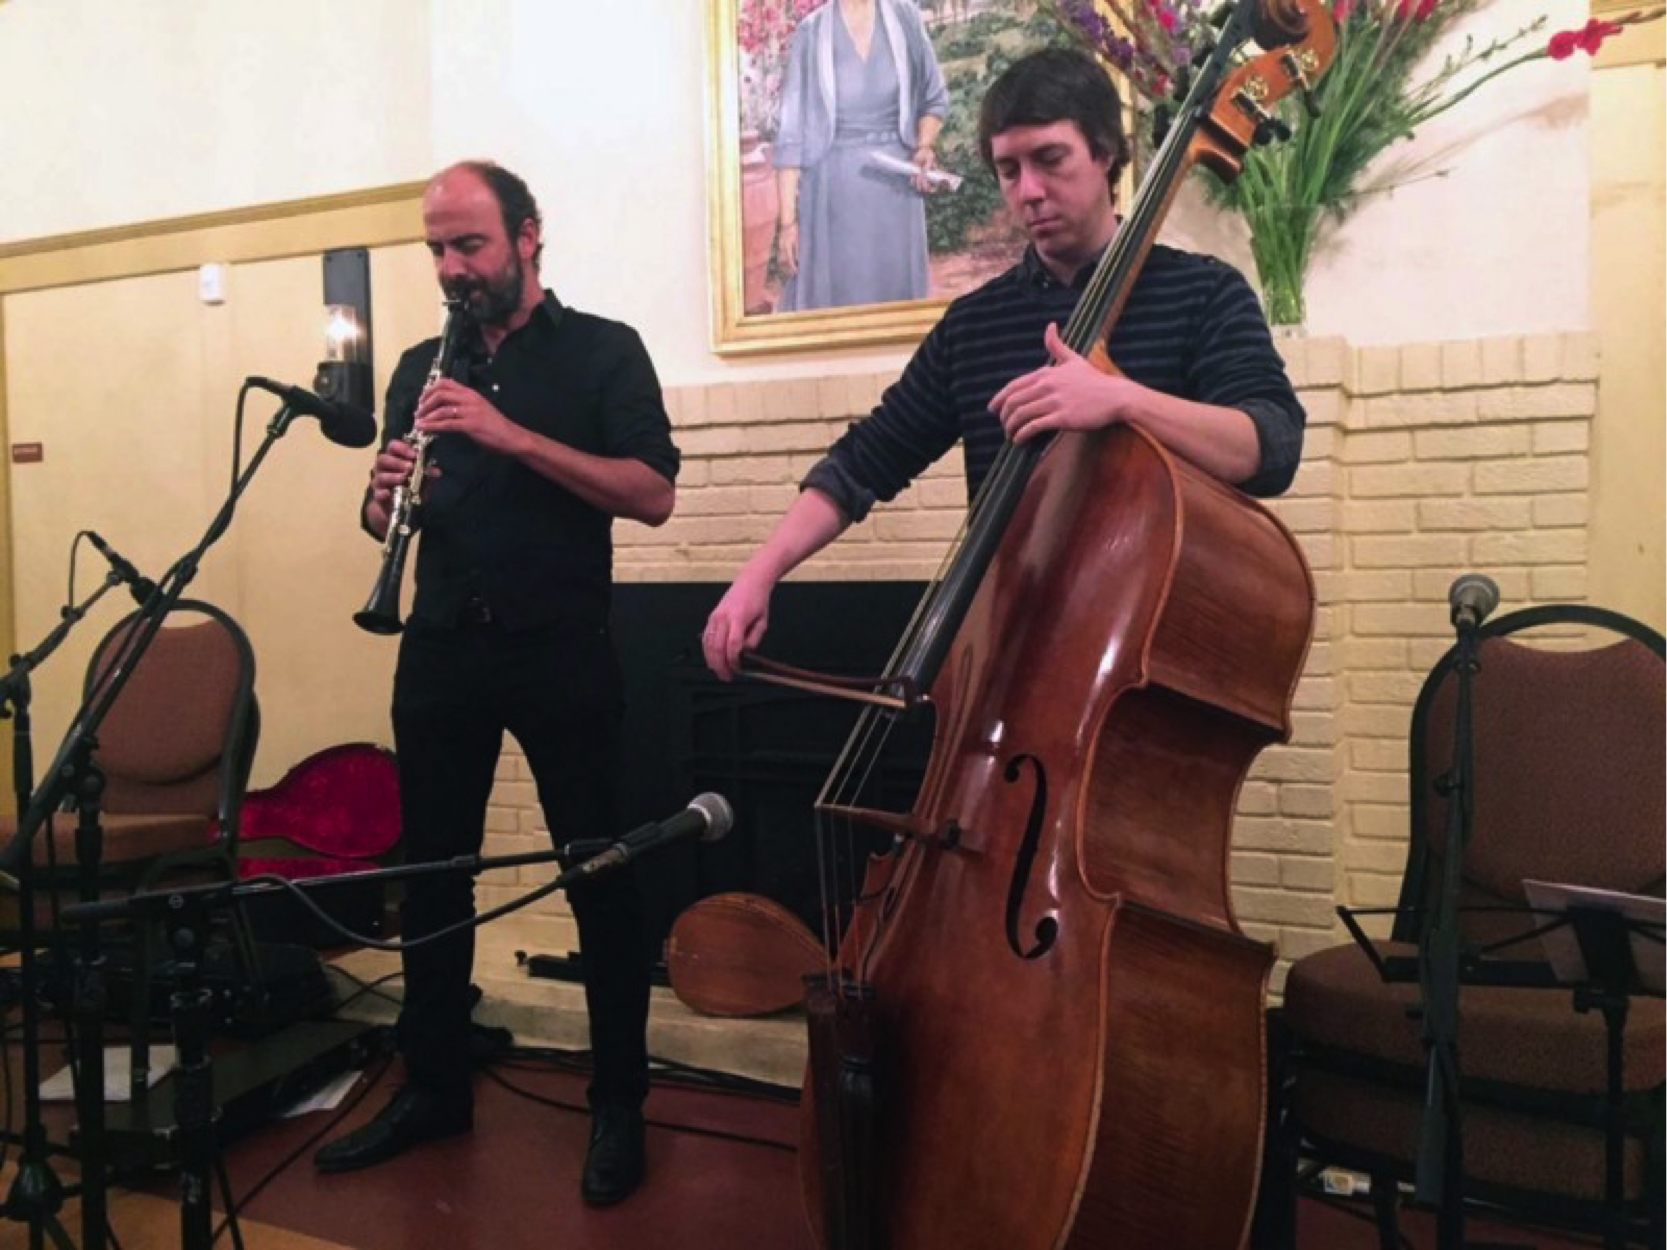 Kinan Azmeh, playing alongside his bassist Shawn Conley, dedicated his second piece to falling in love in a war-torn country. (Photo by Jane Carroll)